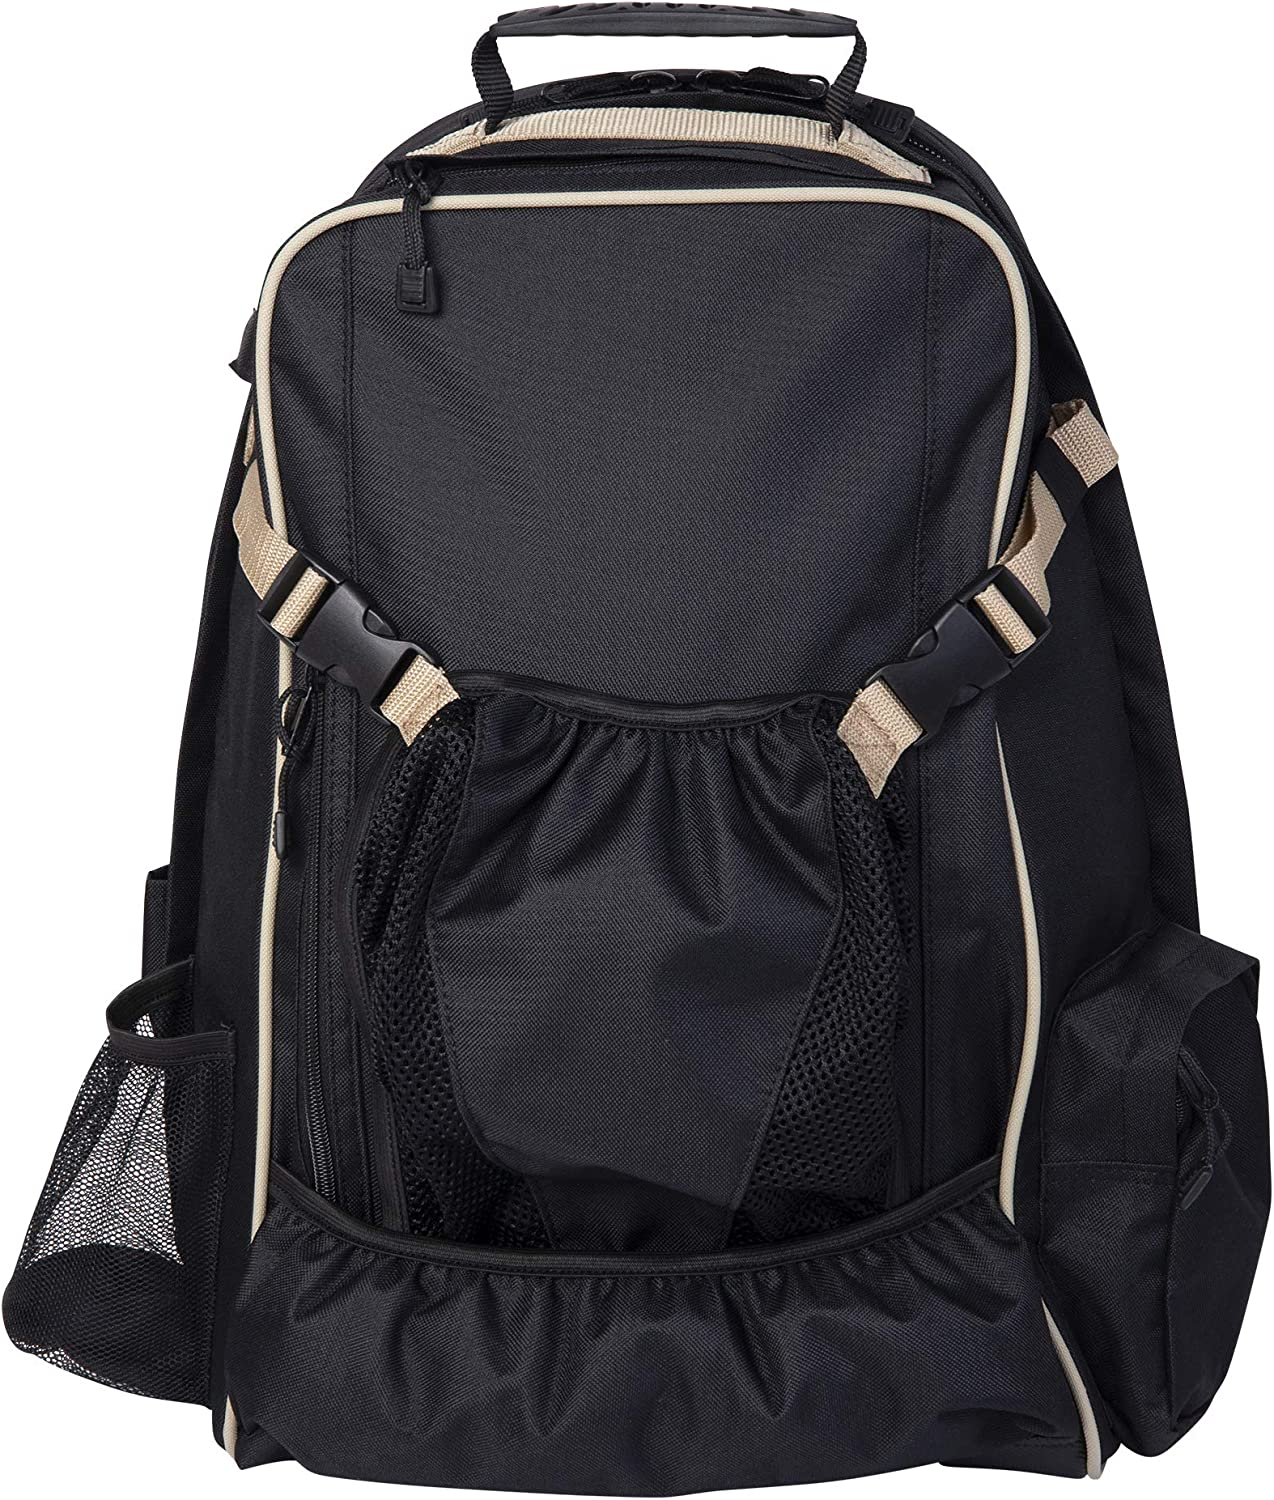 Huntley Equestrian Back Pack Black